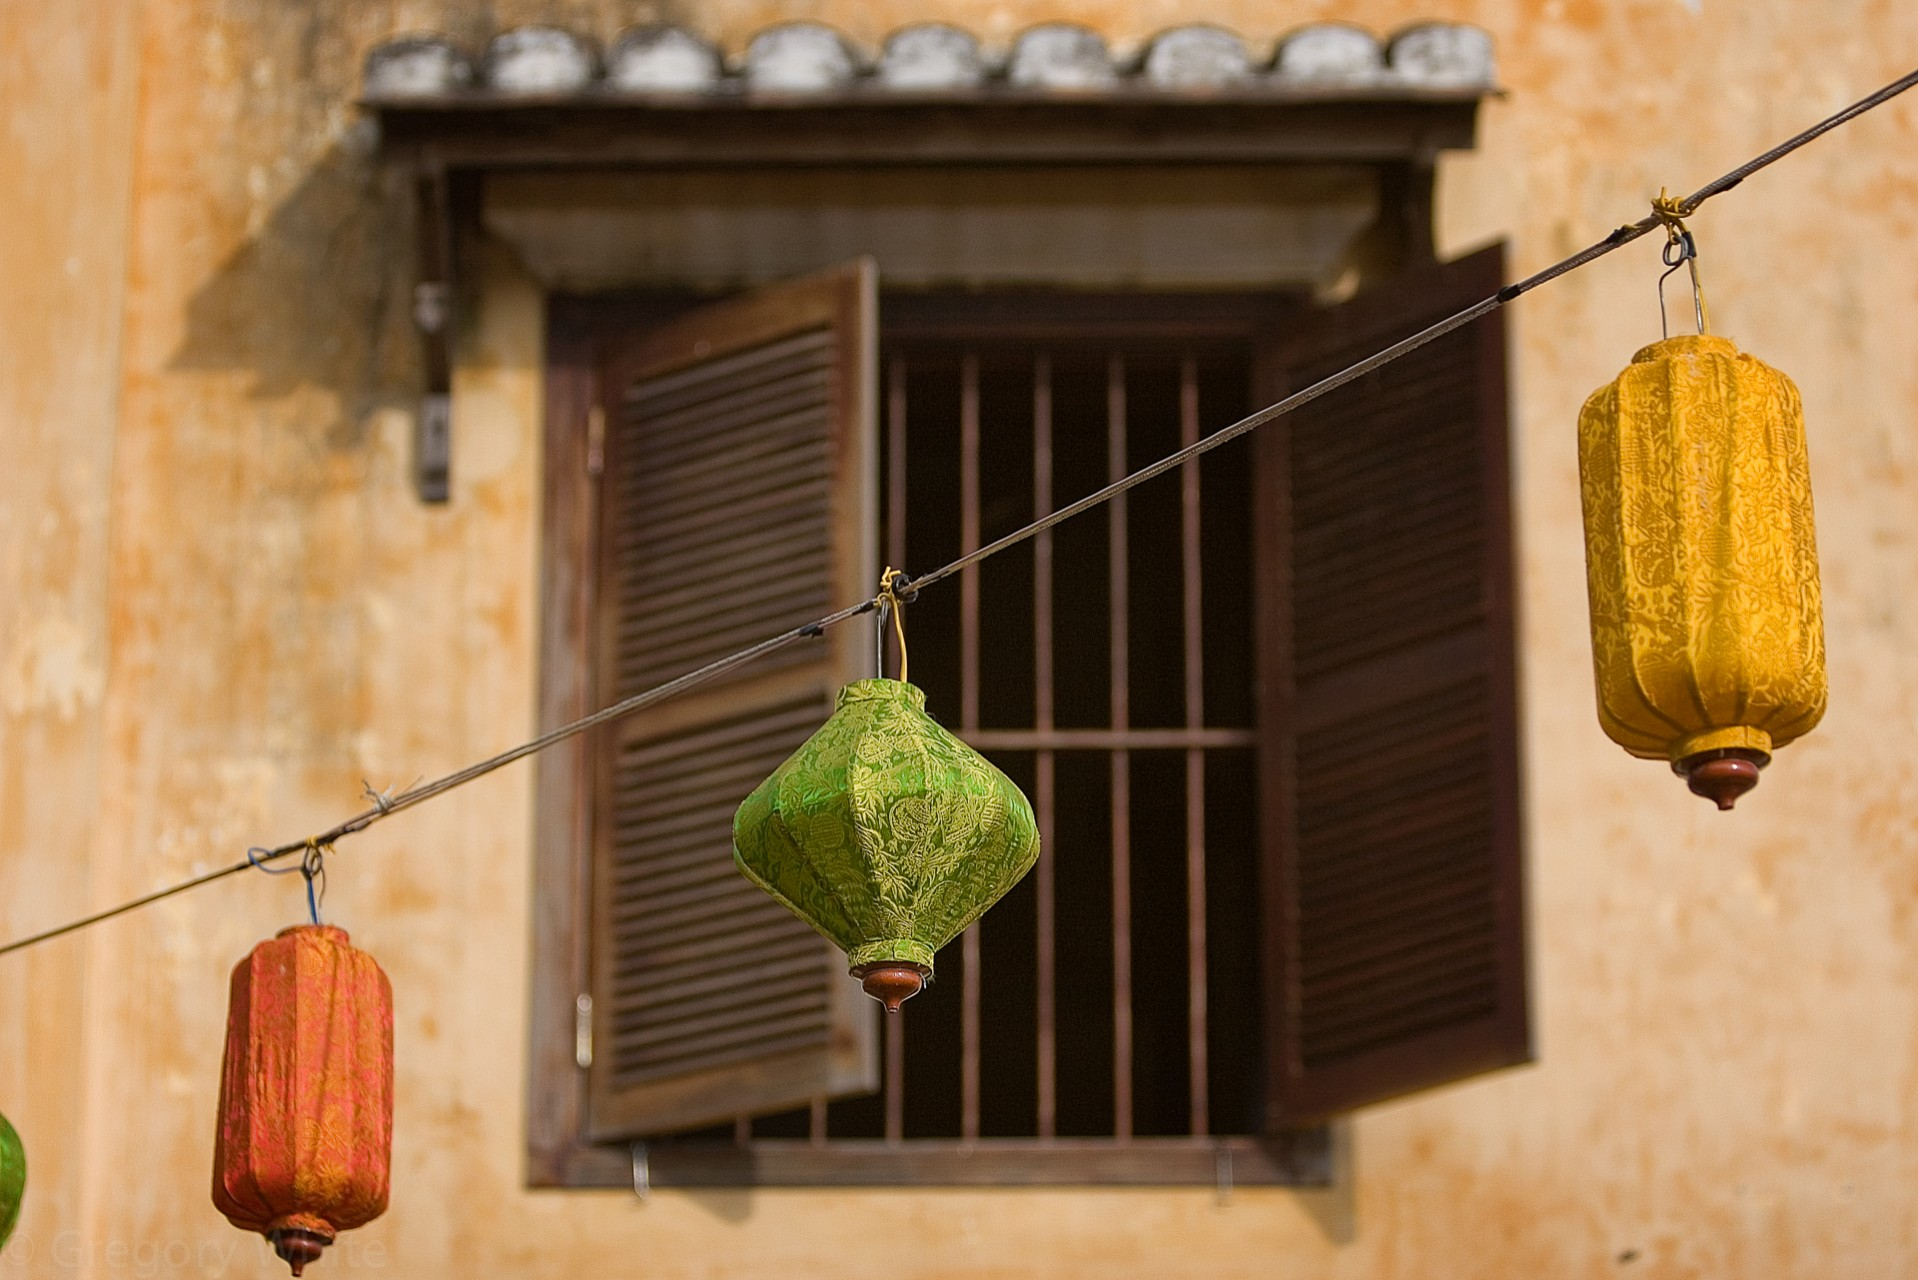 Colorful lanterns hang for the full moon celebration in Hoi An, Vietnam.